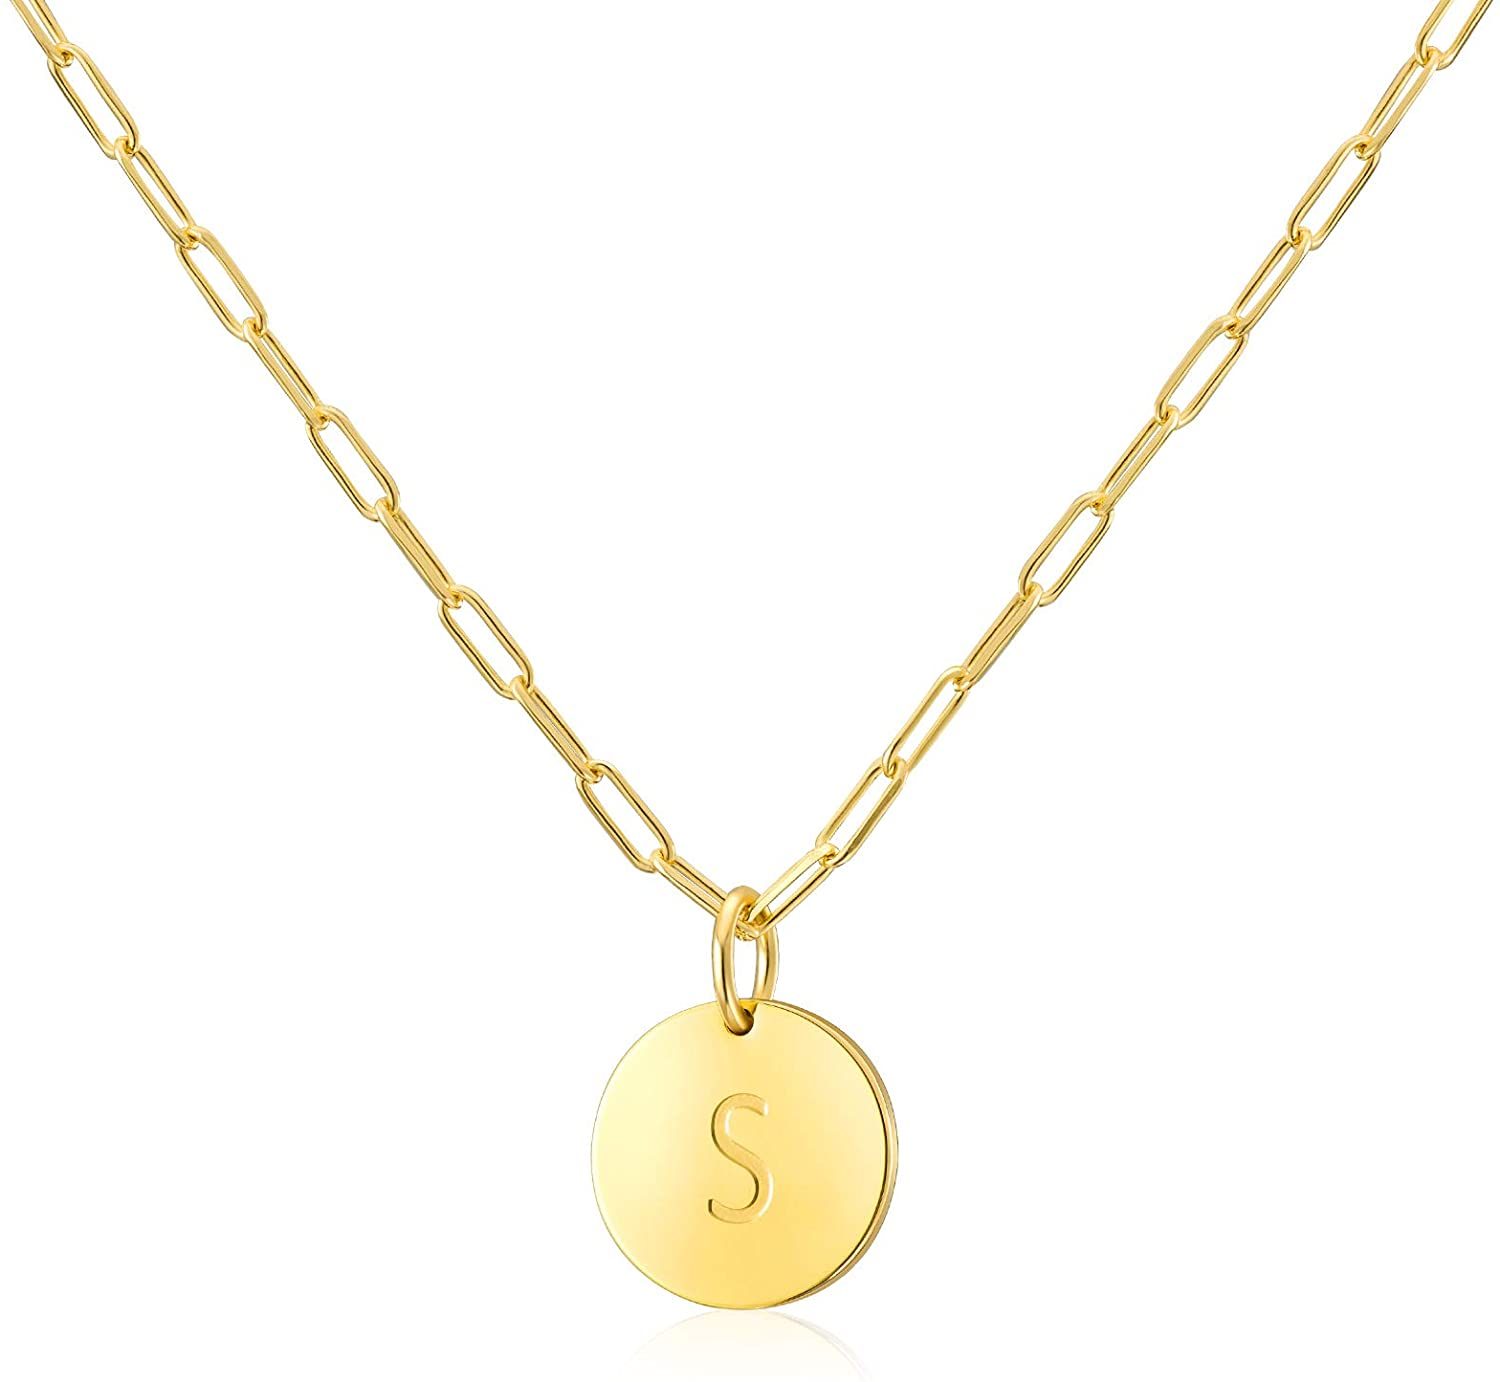 Initial Necklaces Gifts for Women Girls : 14k Gold Plated Round Disc Letter Pendant Paperclip Chain Personalized Name Teens Kids Birthday Jewelry